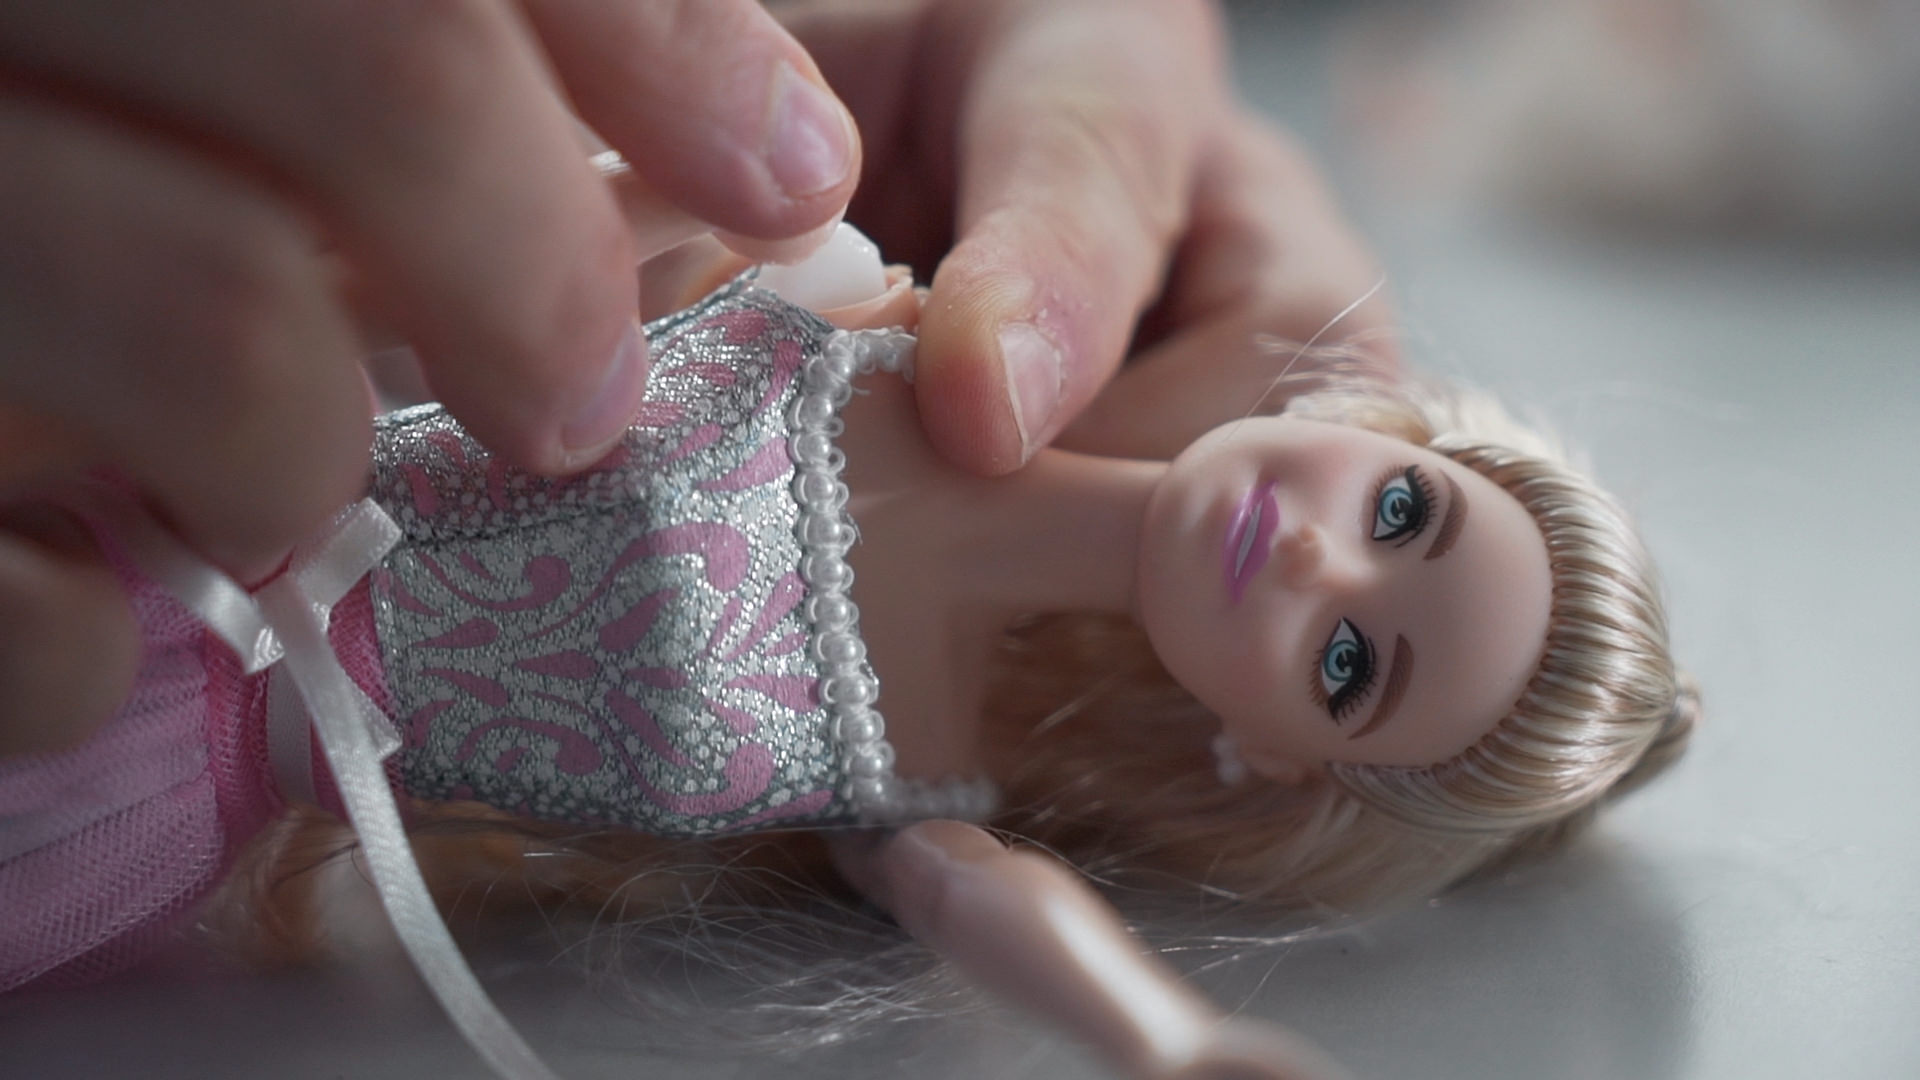 Fixing Barbie with 3D printed part. Photo via Dagoma.